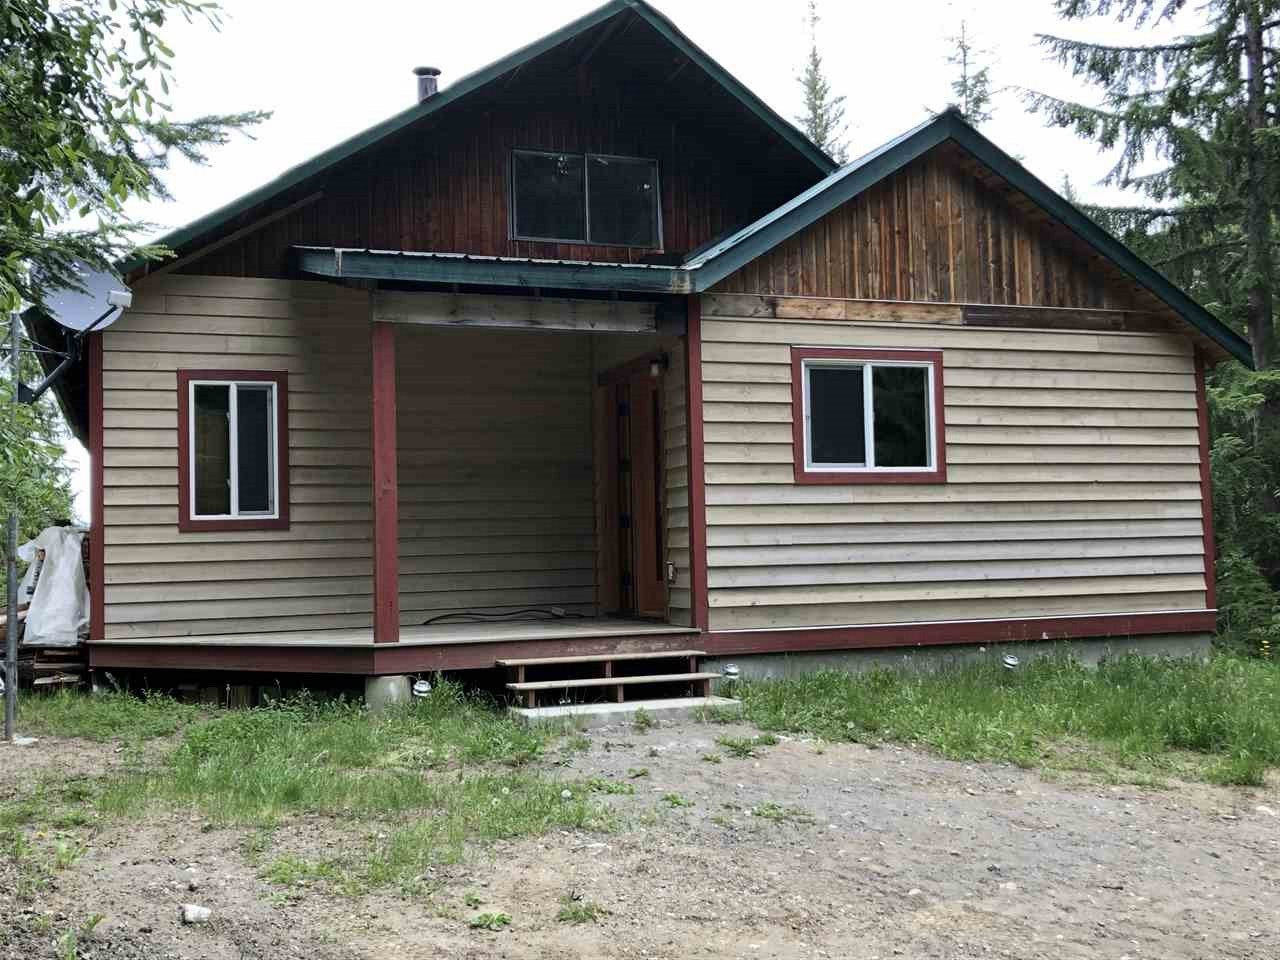 Main Photo: 5660 MARSHALL CREEK Road: Horsefly House for sale (Williams Lake (Zone 27))  : MLS®# R2277044